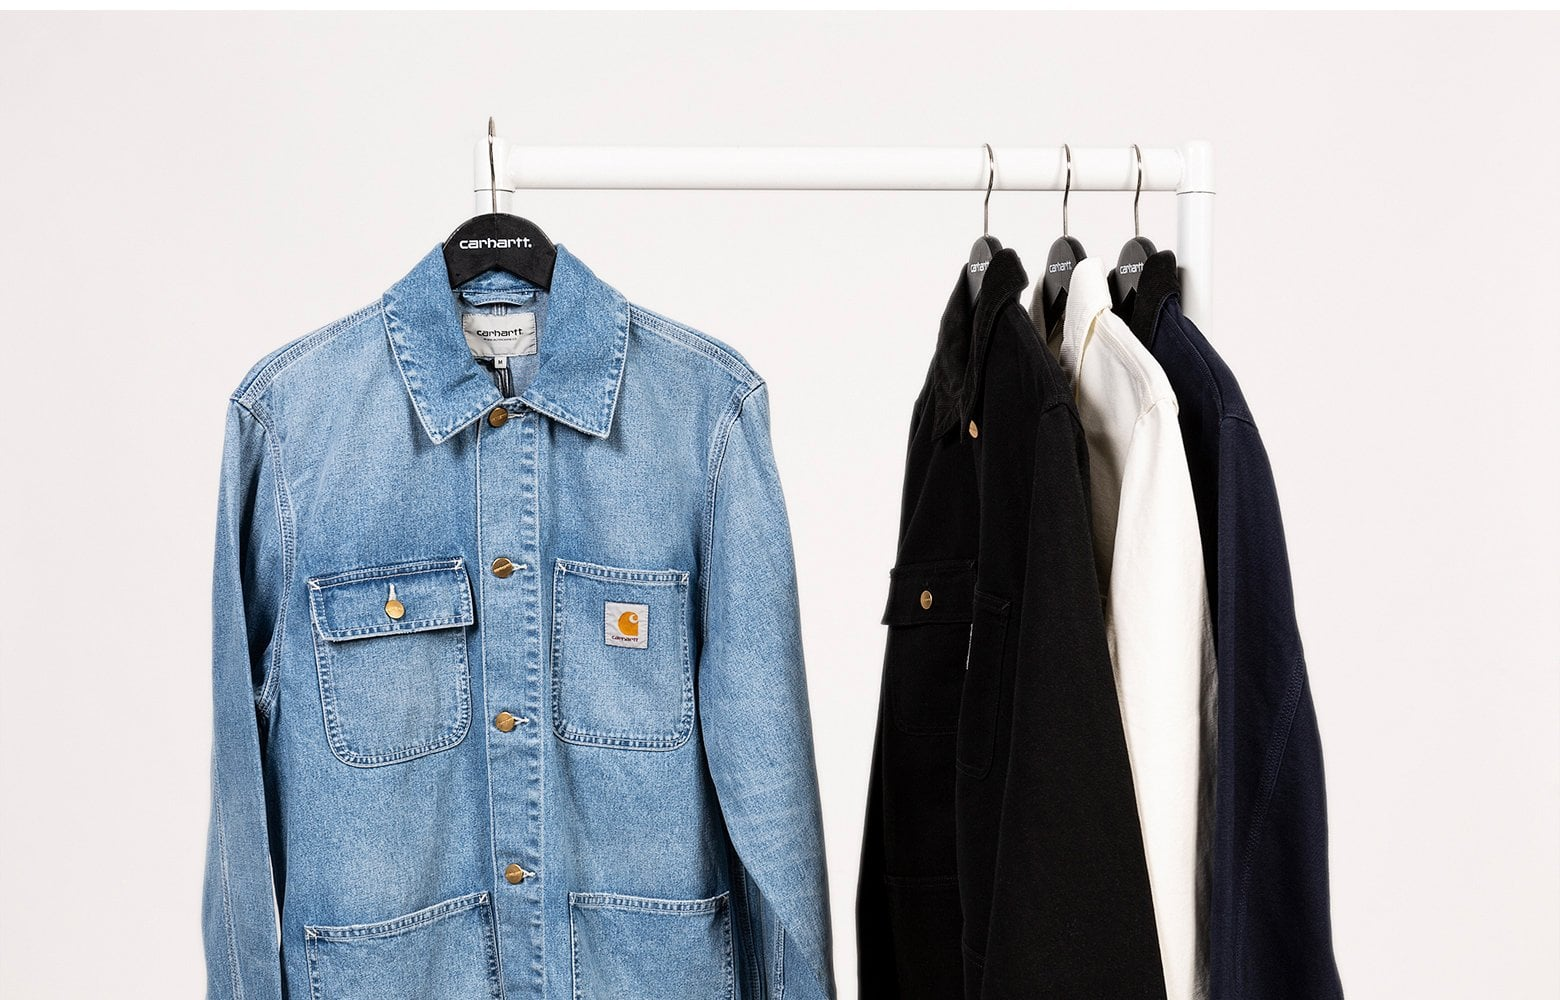 Carhartt Spring Launched